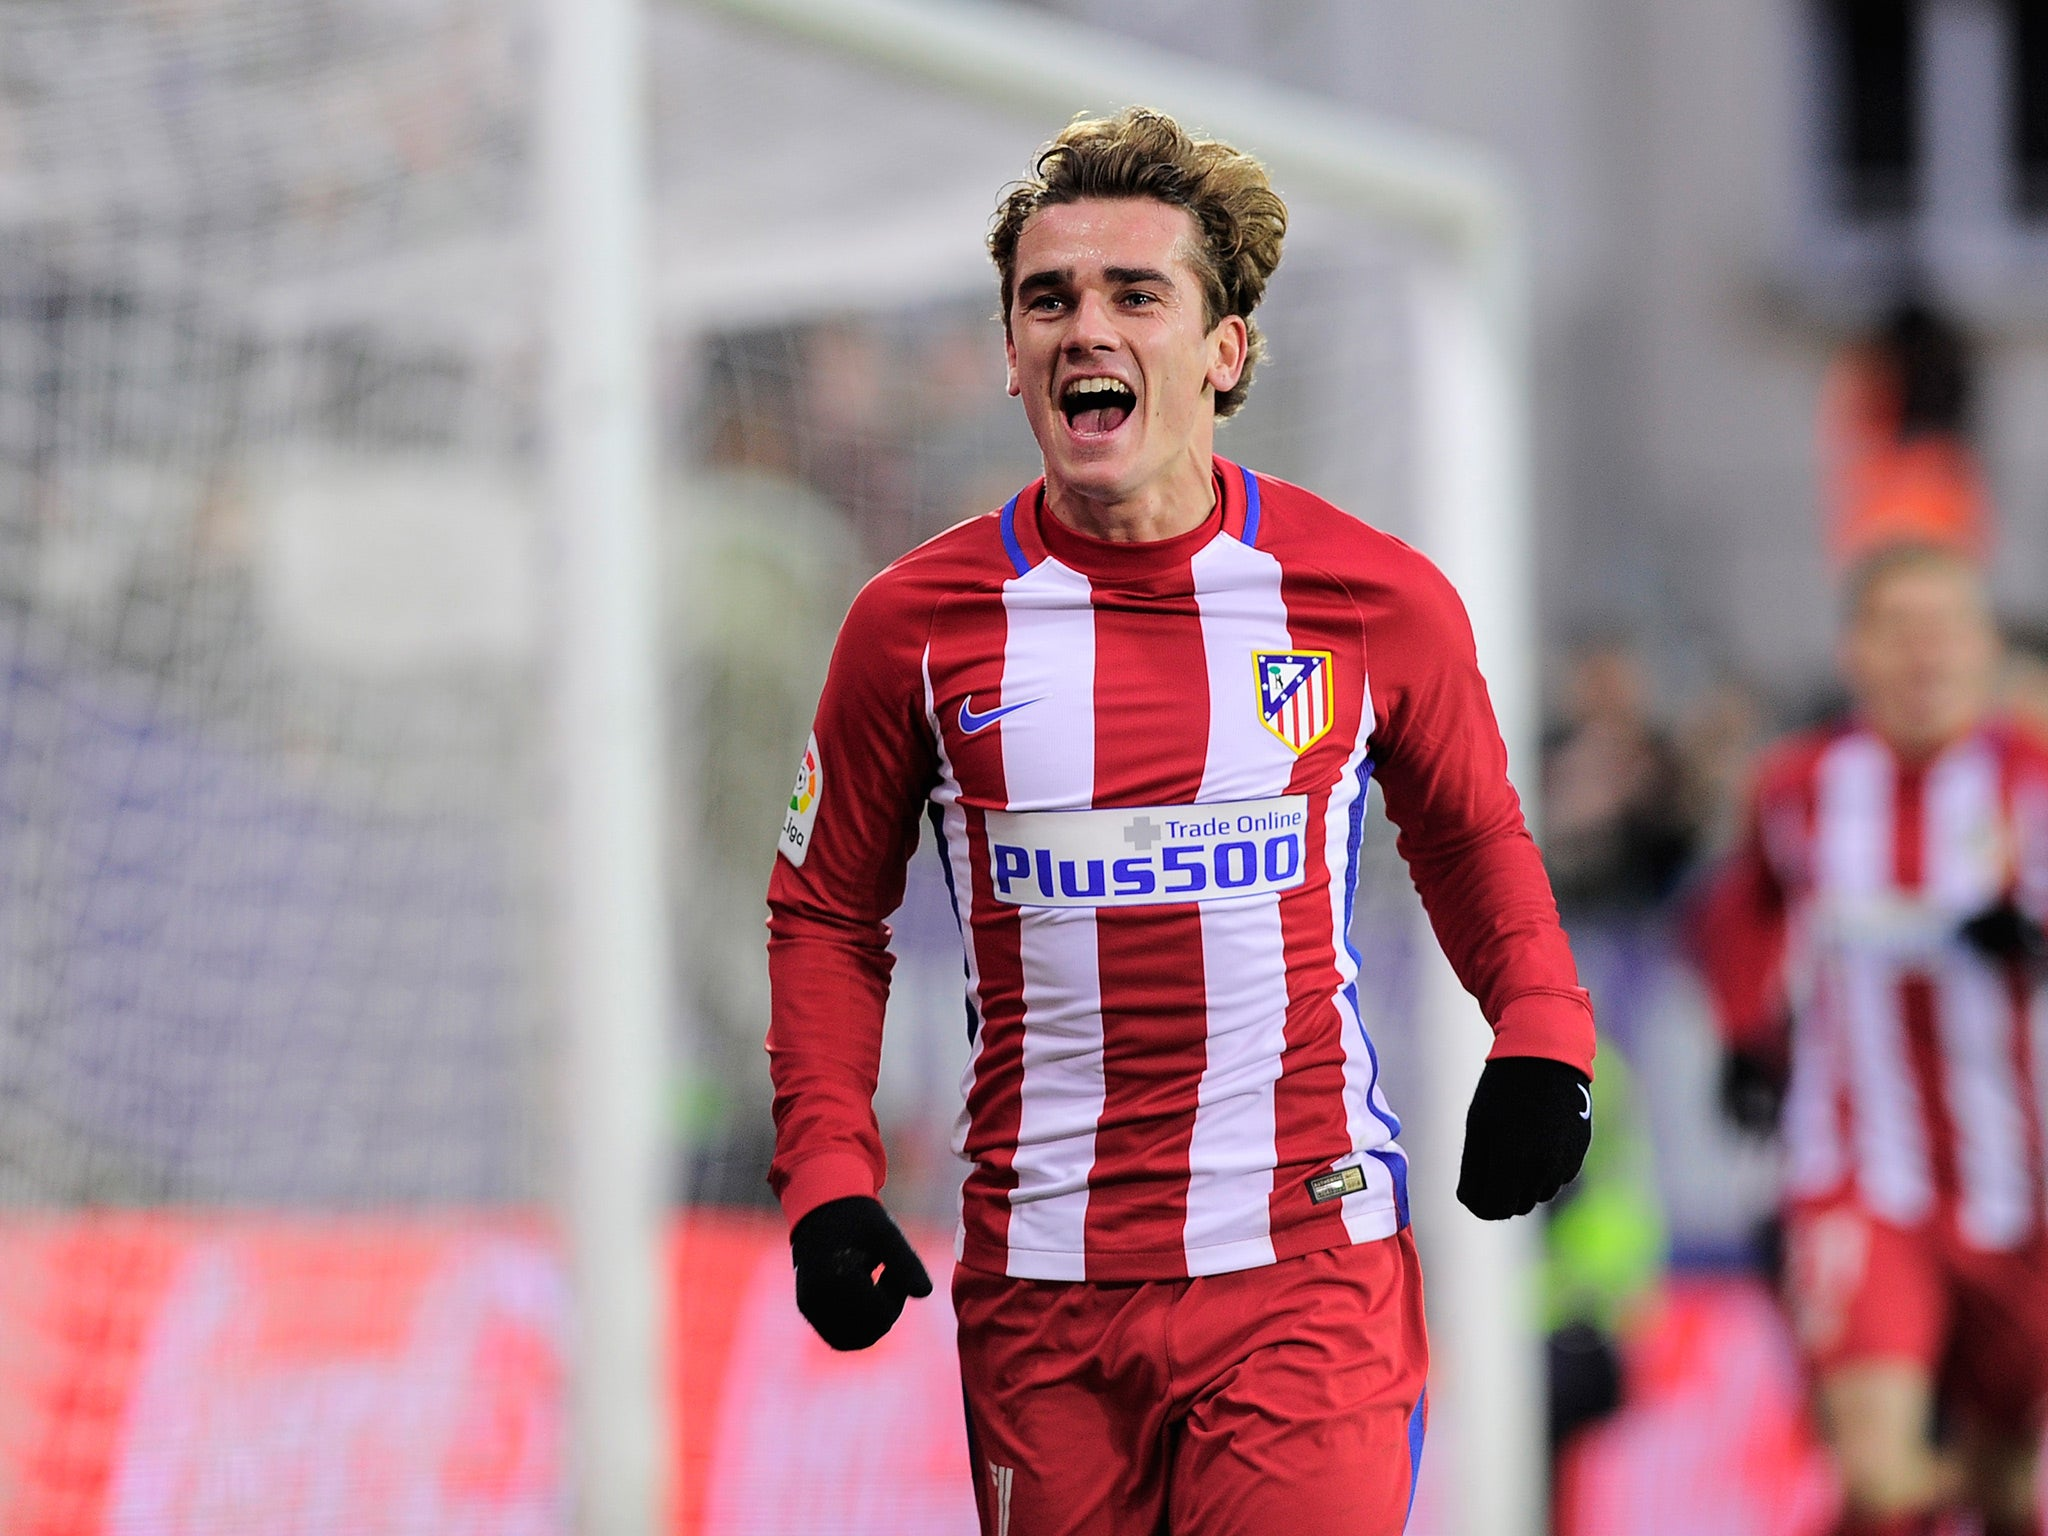 Antoine Griezmann agrees personal terms to join Manchester United